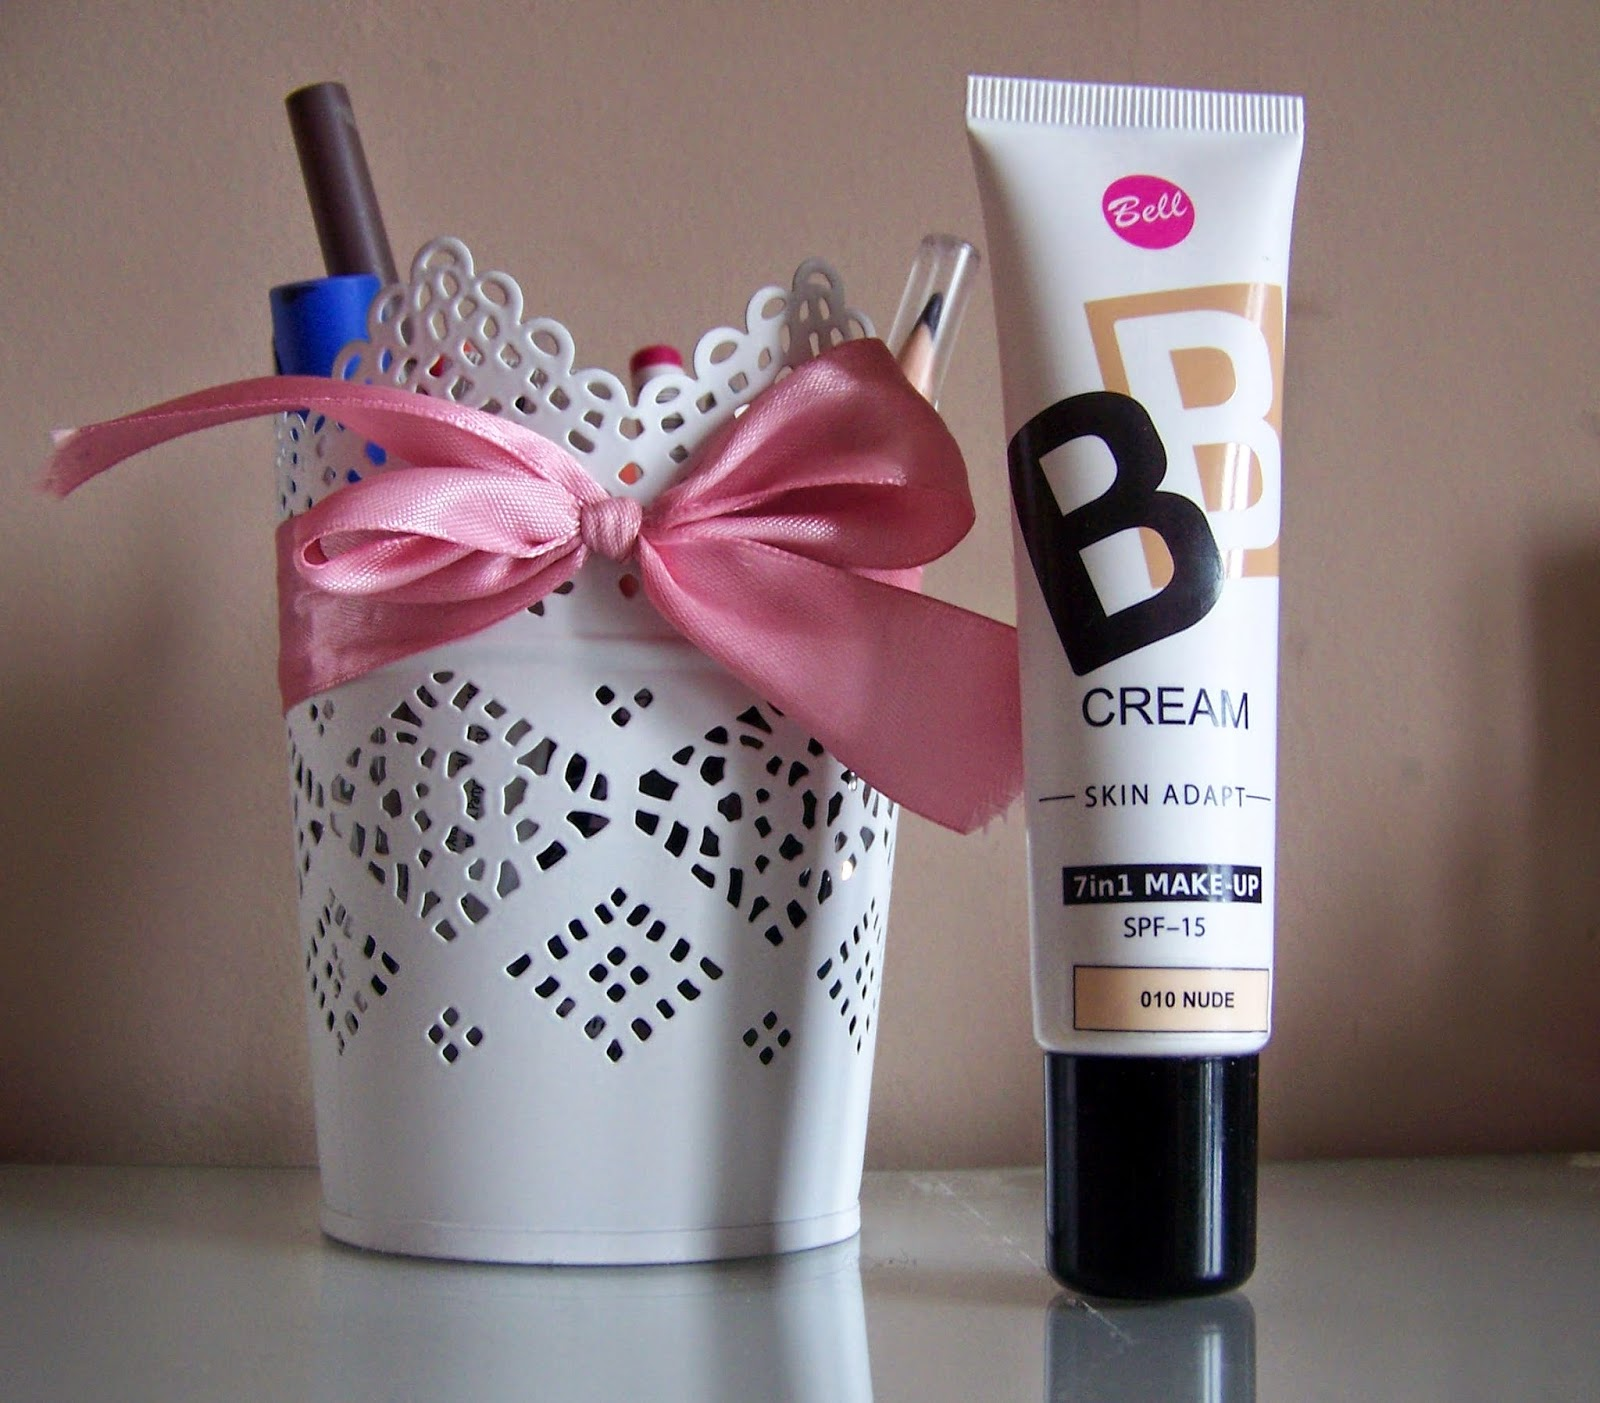 Bell BB Cream Skin Adapt 010 Nude